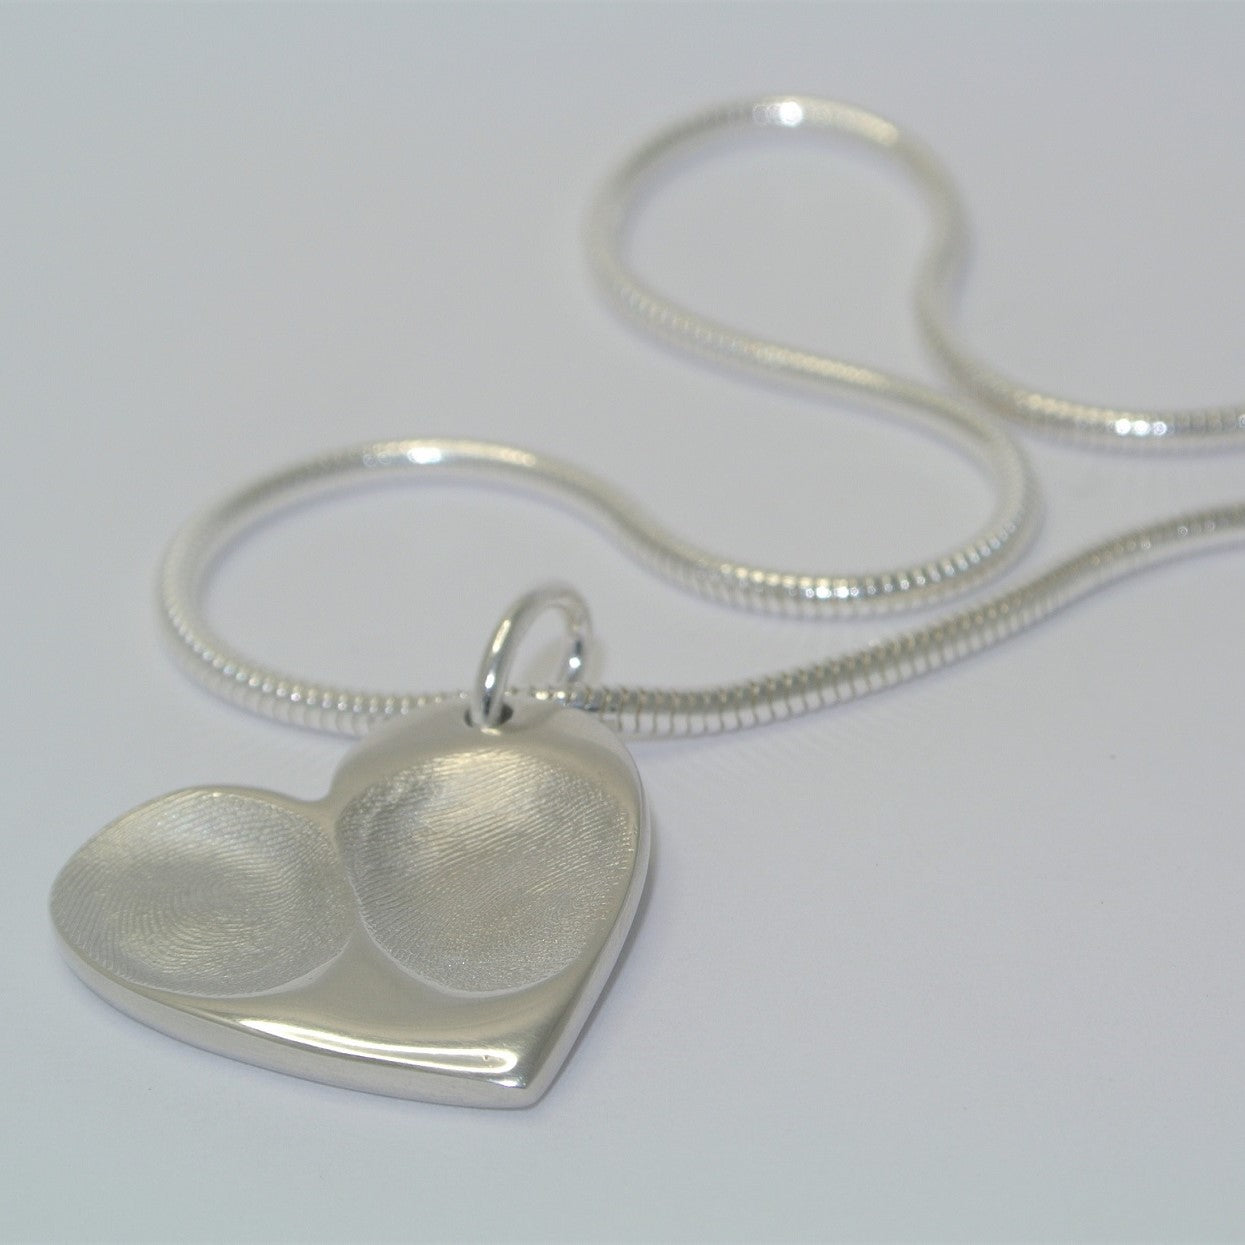 Fingerprint Jewellery Workshop - Booking and Deposit - Wed 16th October - Leaf & Bean Cafe